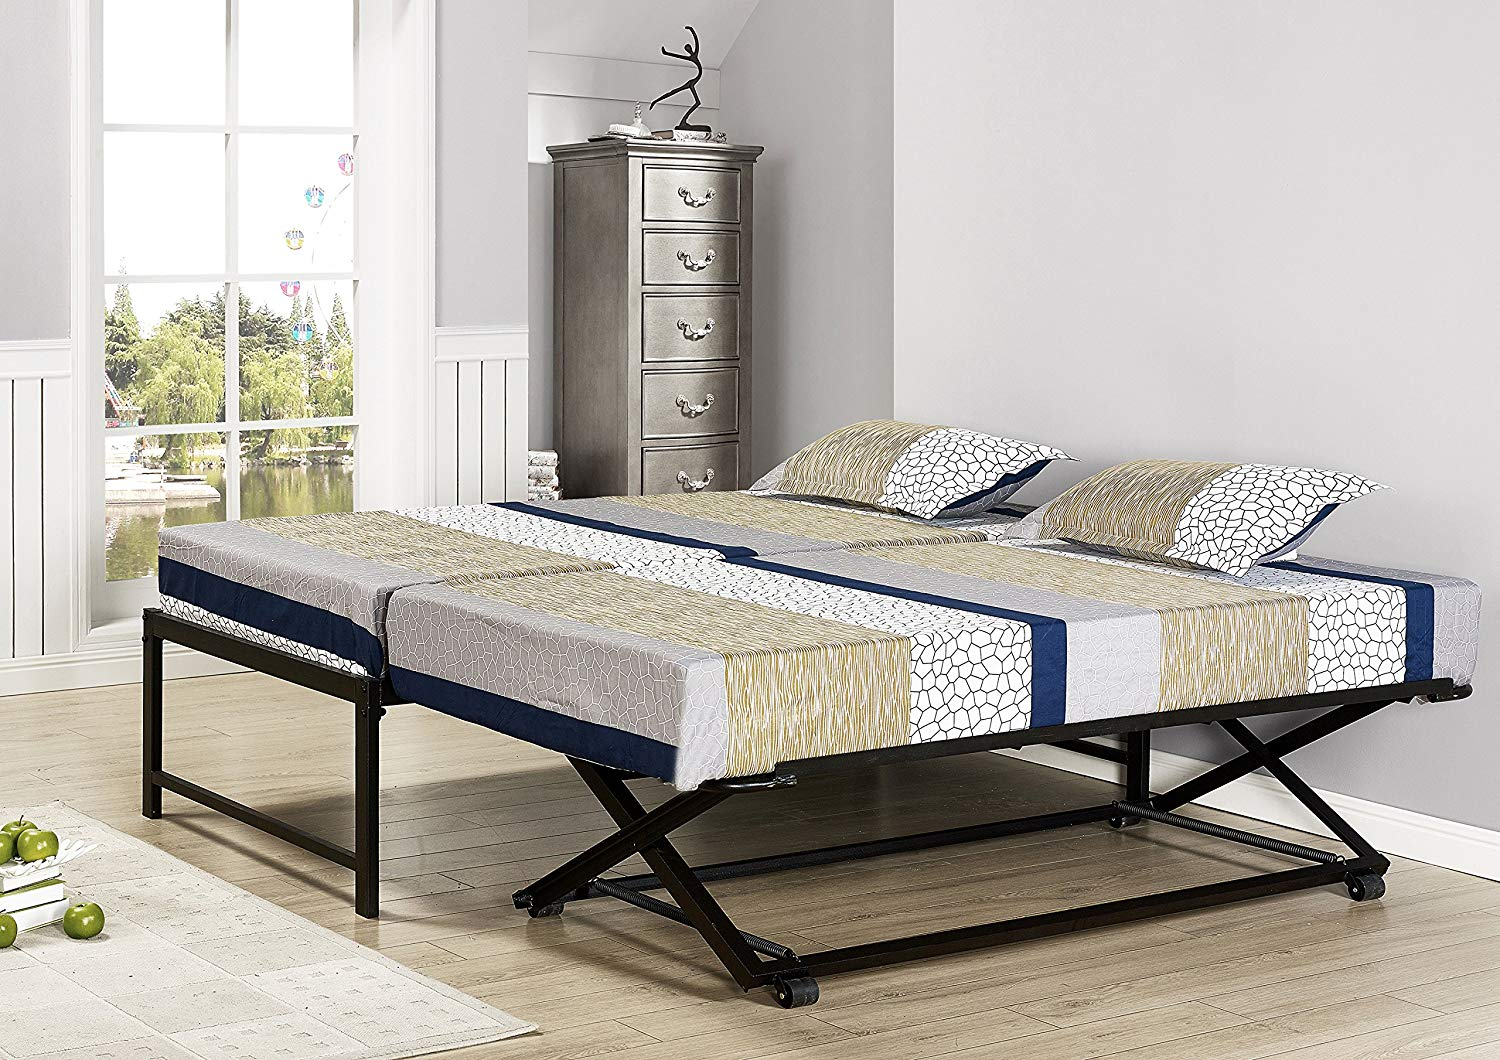 Lifting Beds Best Pop Up Trundle Beds 2019 Review Top 9 Ranking